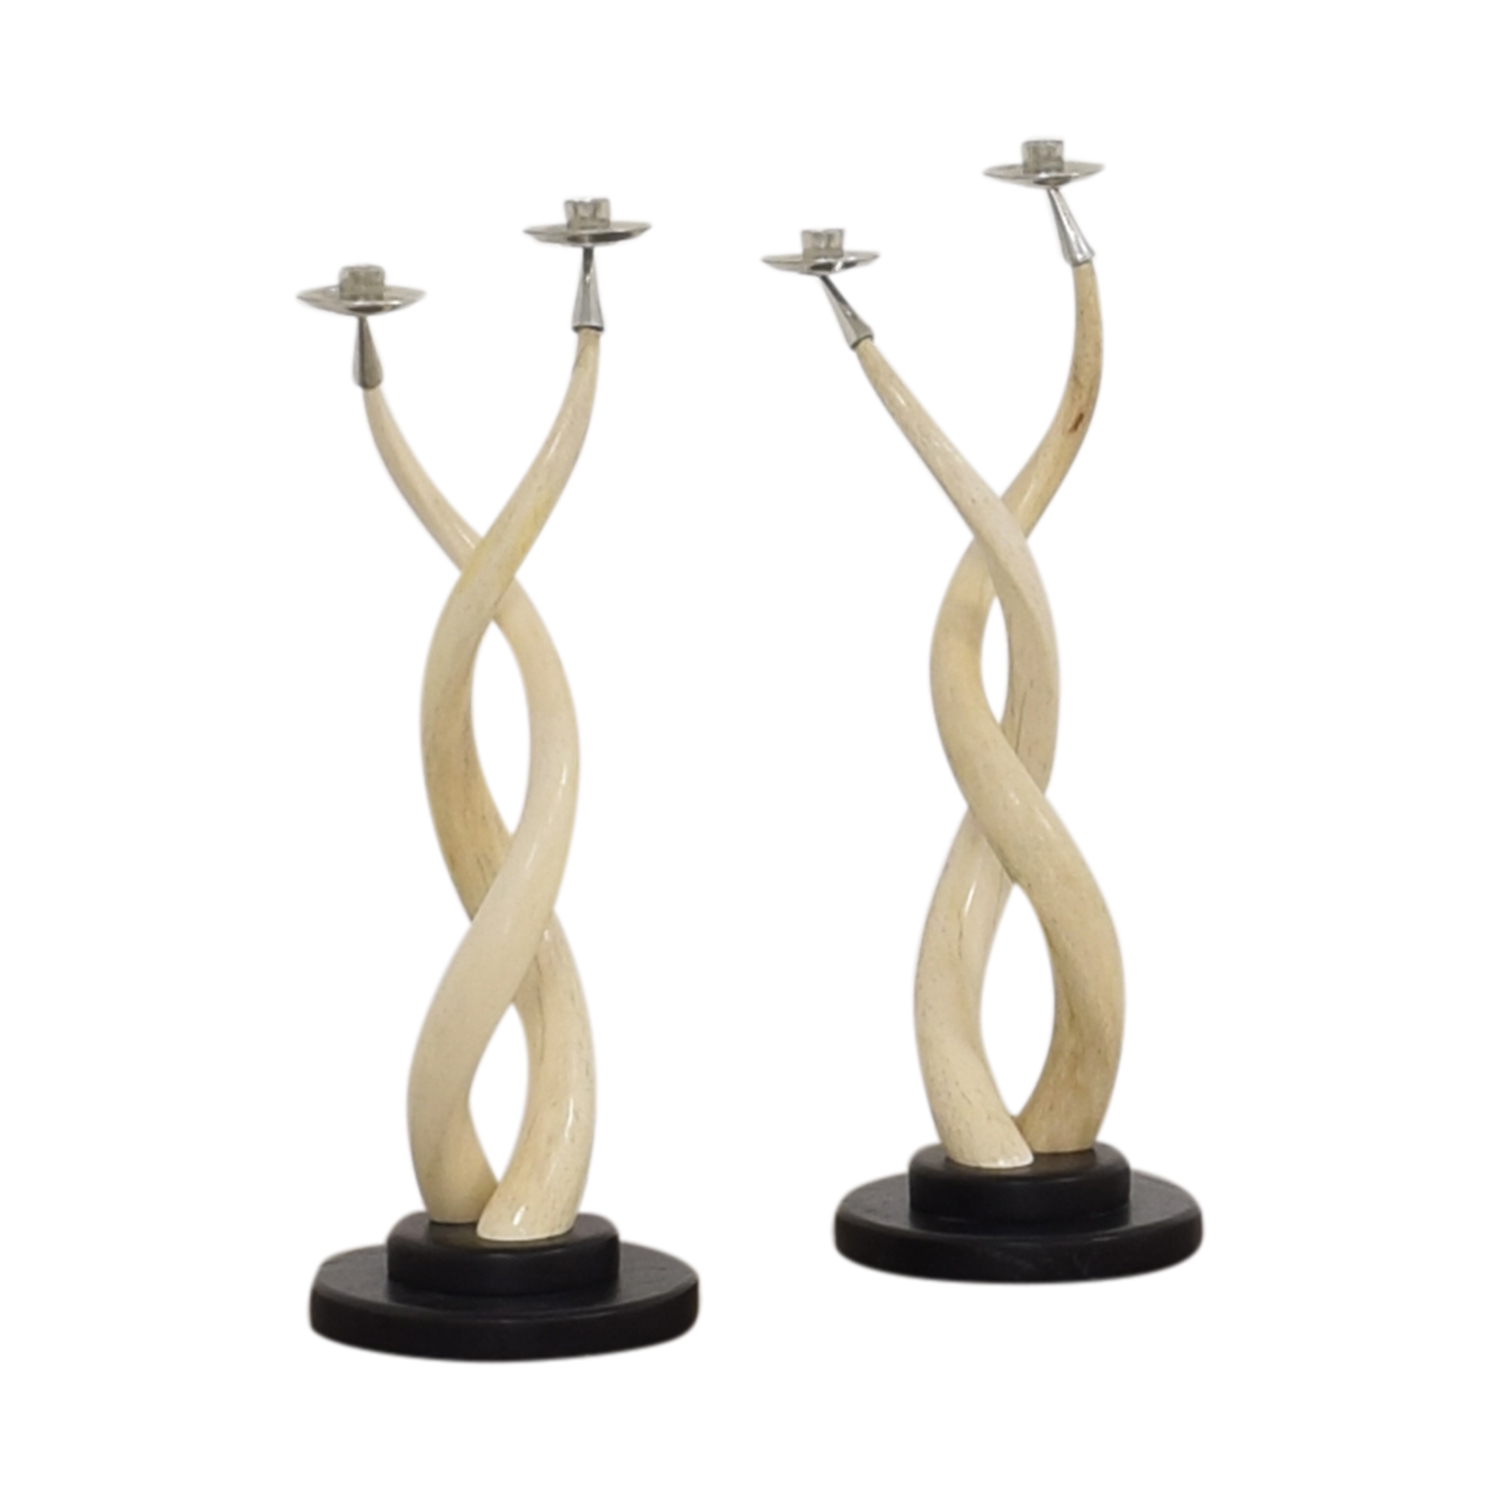 Twisted Horn Candlesticks Decor